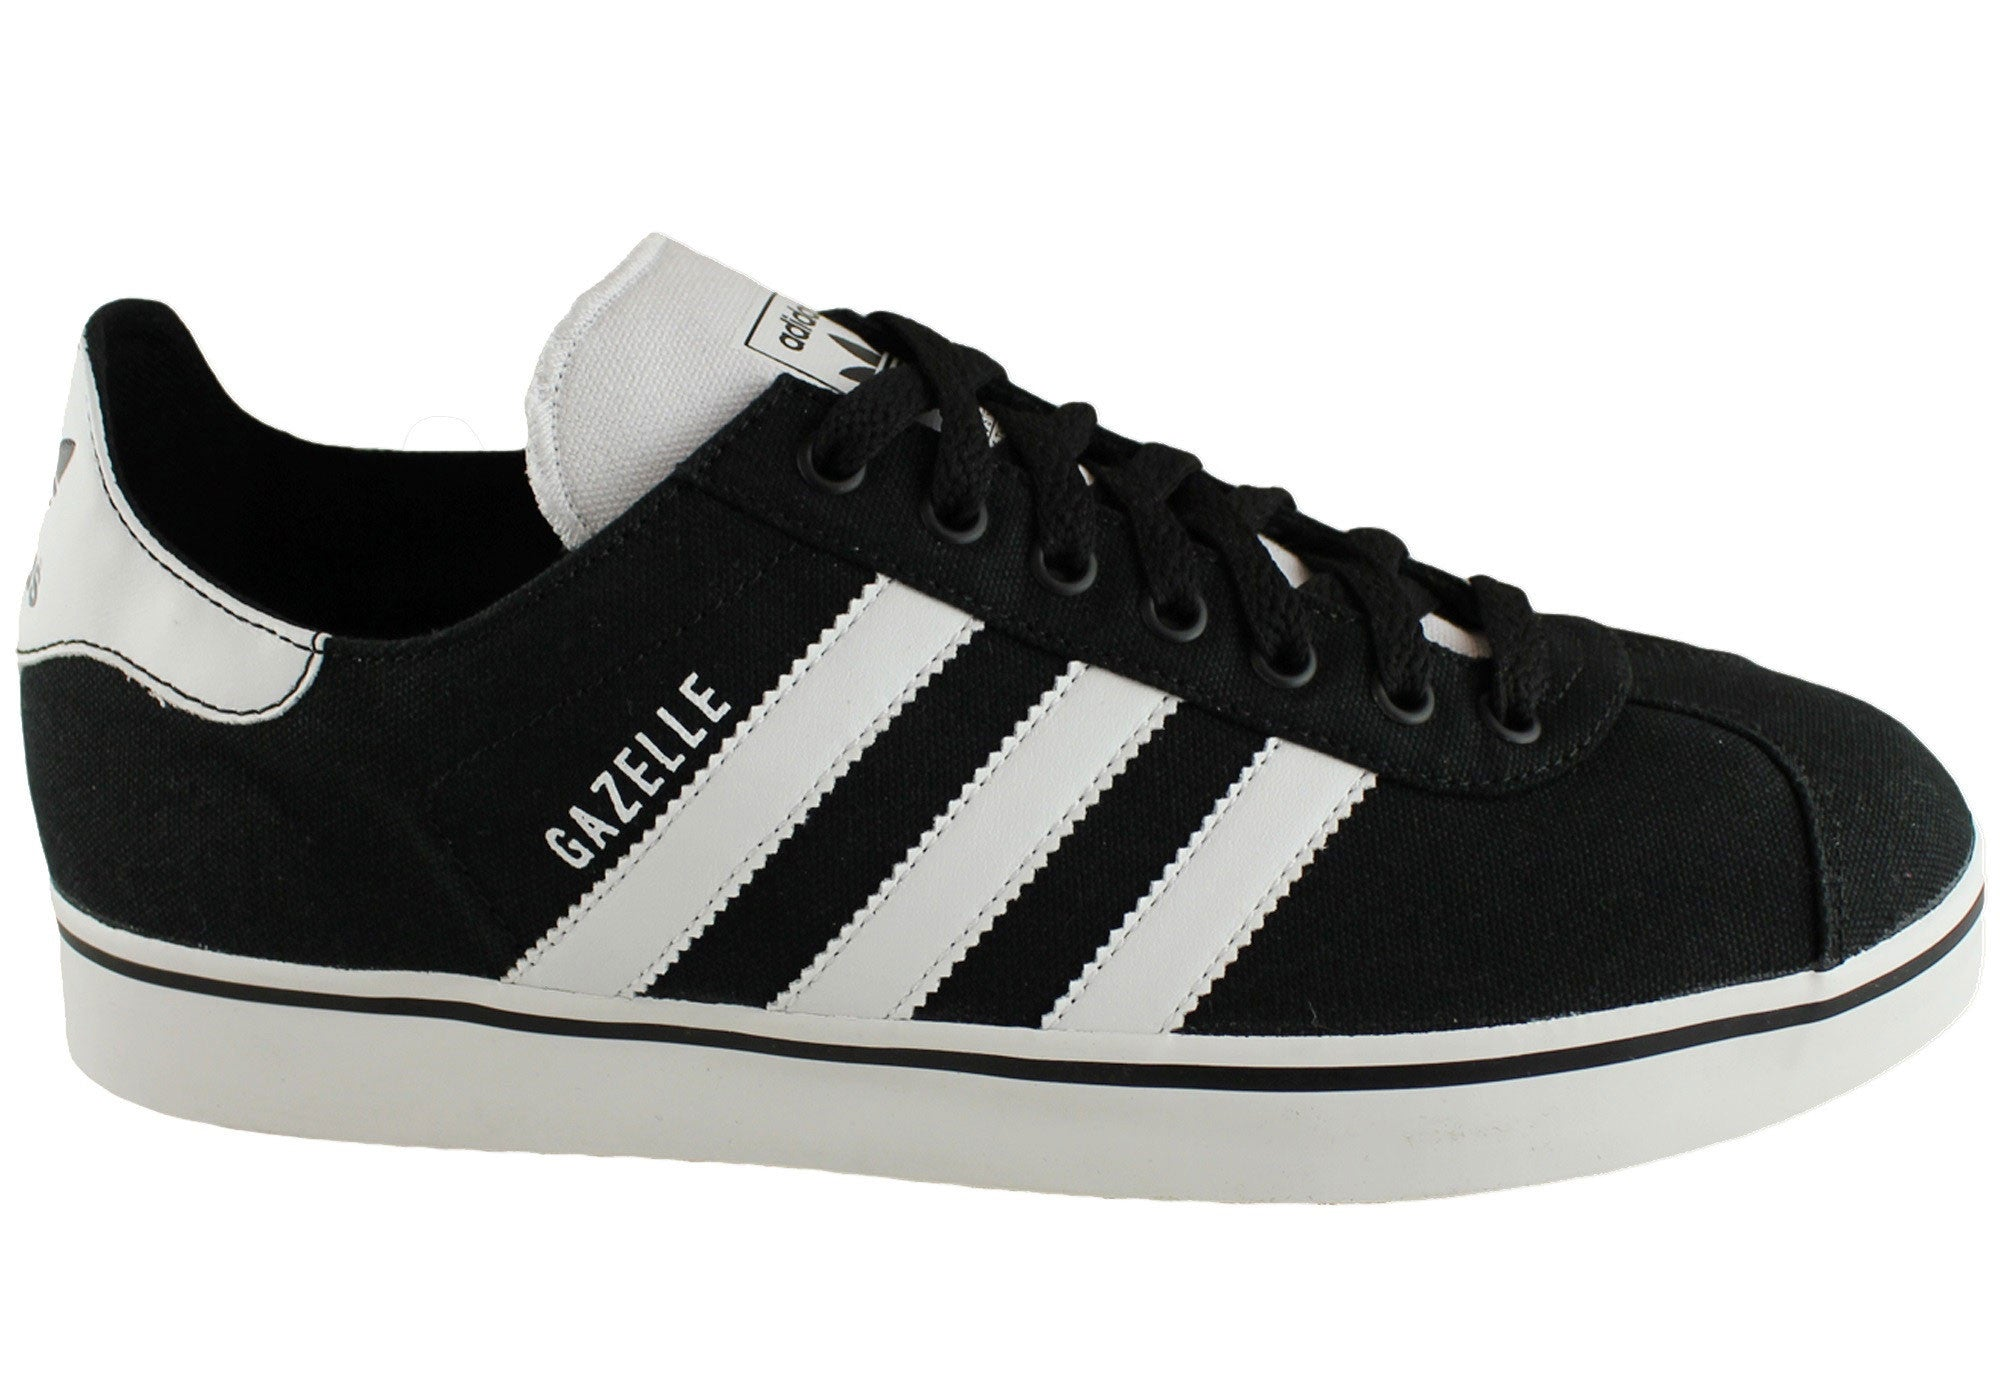 online store 08ae7 9cd46 Home Adidas Gazelle RST Mens Casual Fashion Shoes. Black ...